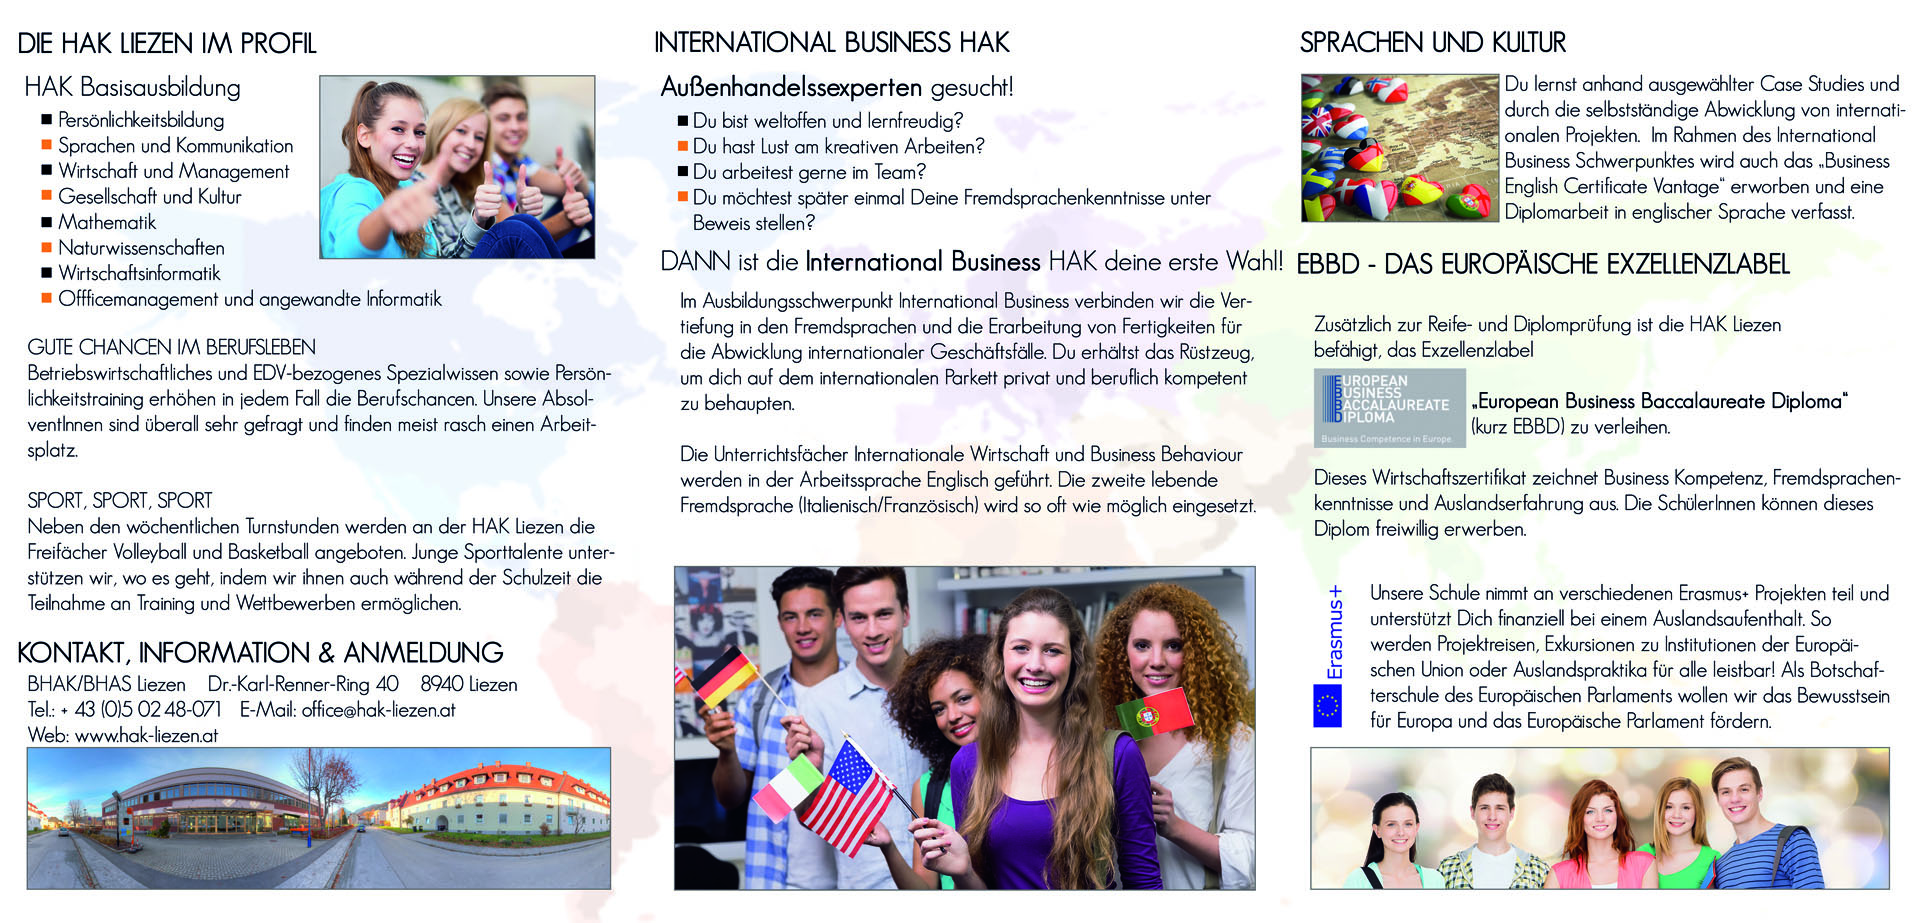 international business folder innen